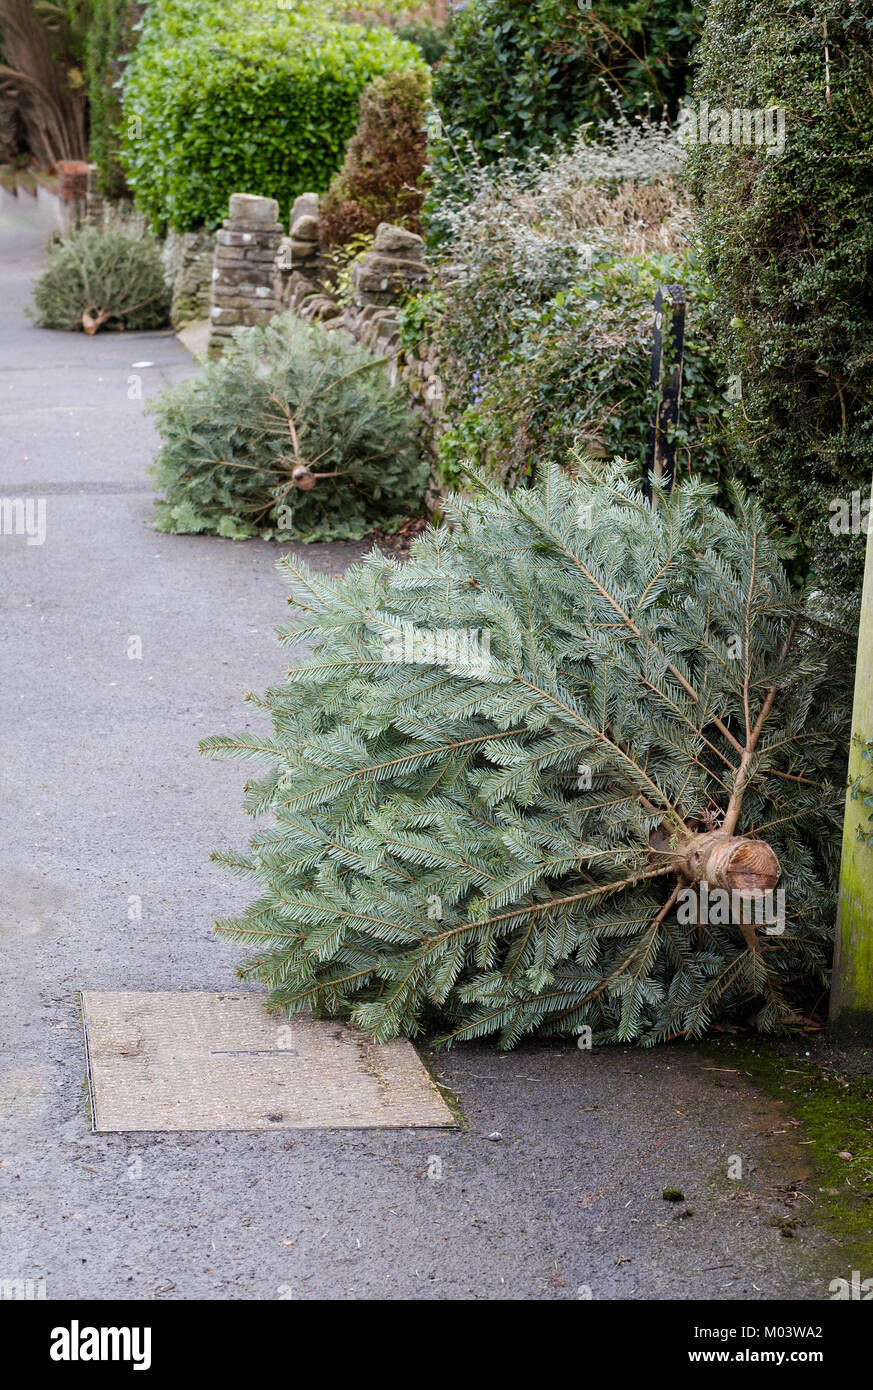 Bristol UK, Thurs 18th Jan 2018. Christmas is well and truly over as a row of household Christmas Trees line the - Stock Image